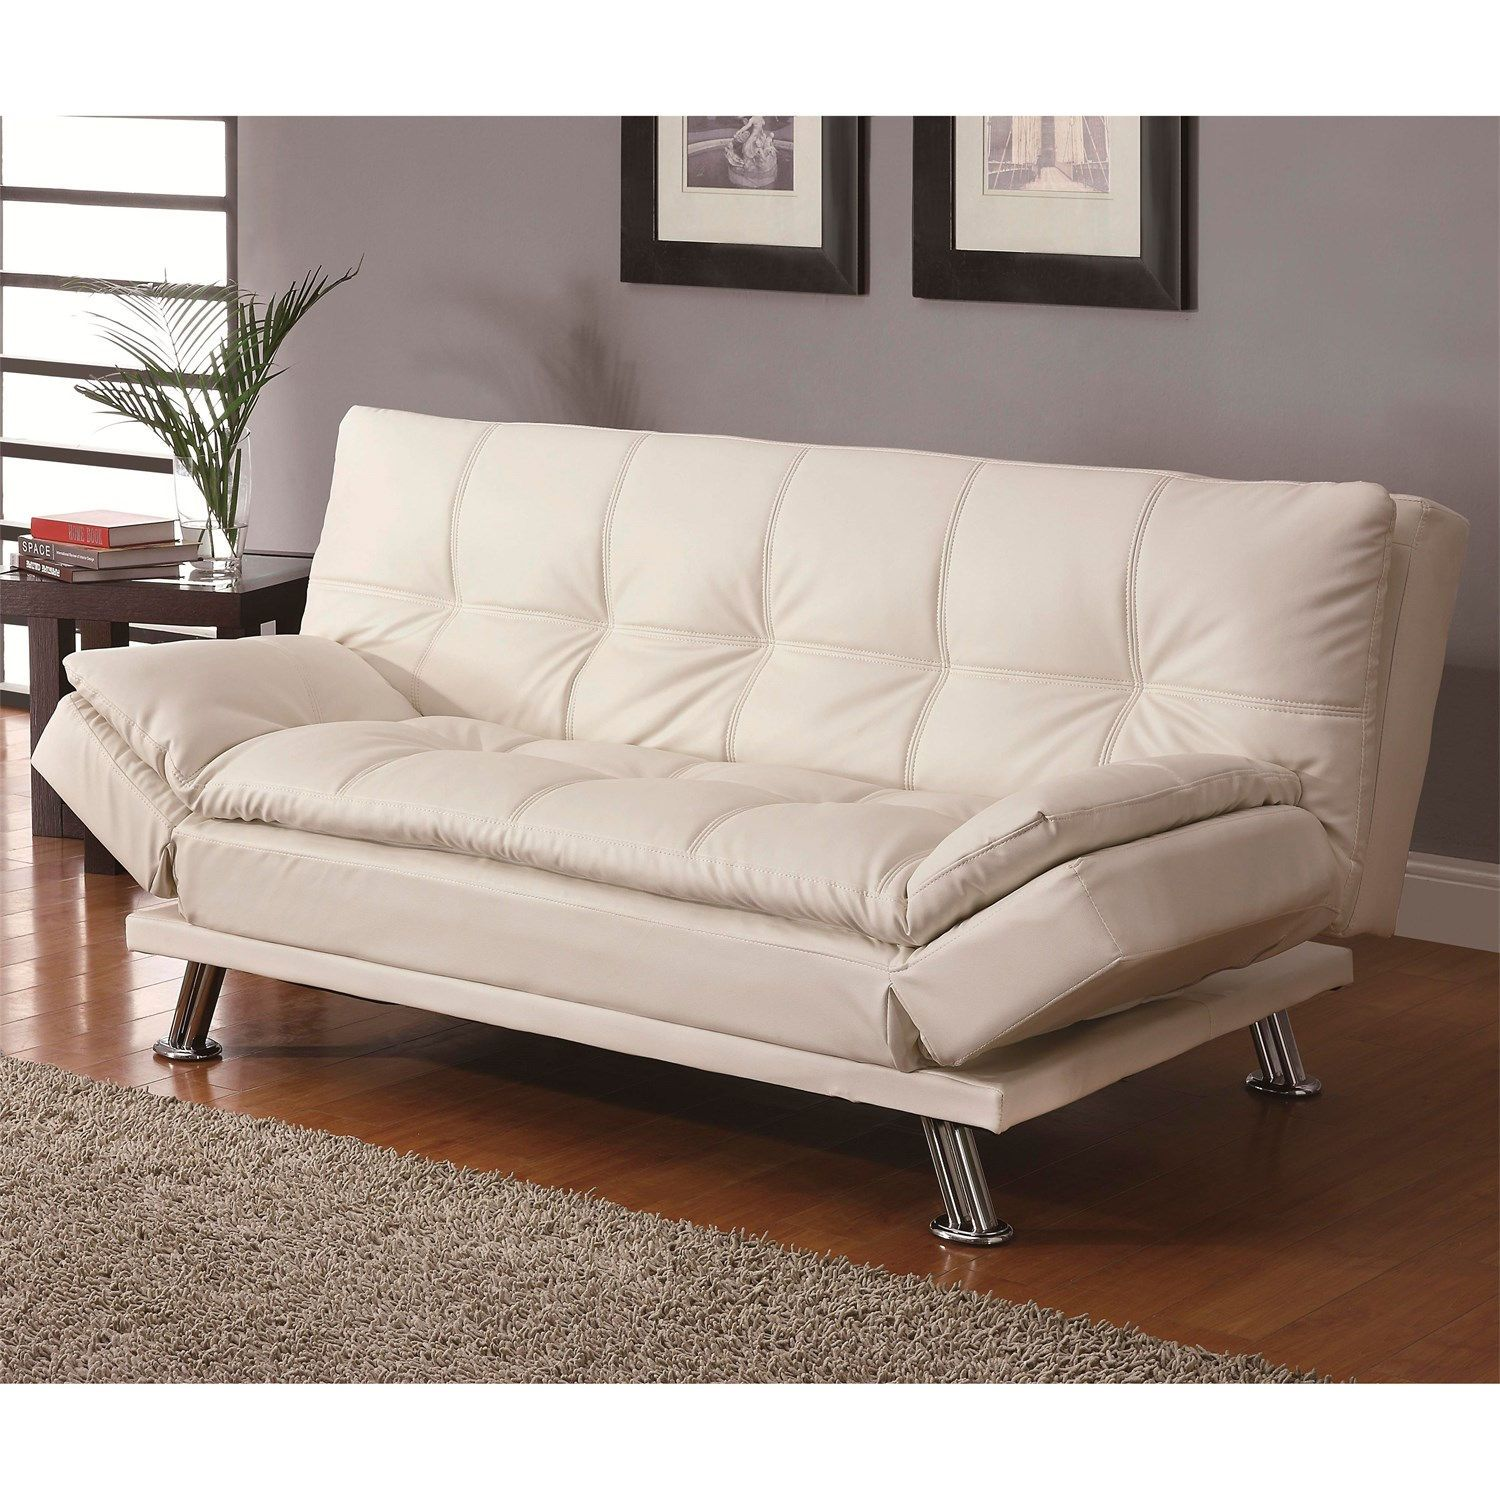 Coaster Furniture 300291 Contemporary Futon Sleeper Sofa Bed In Whi